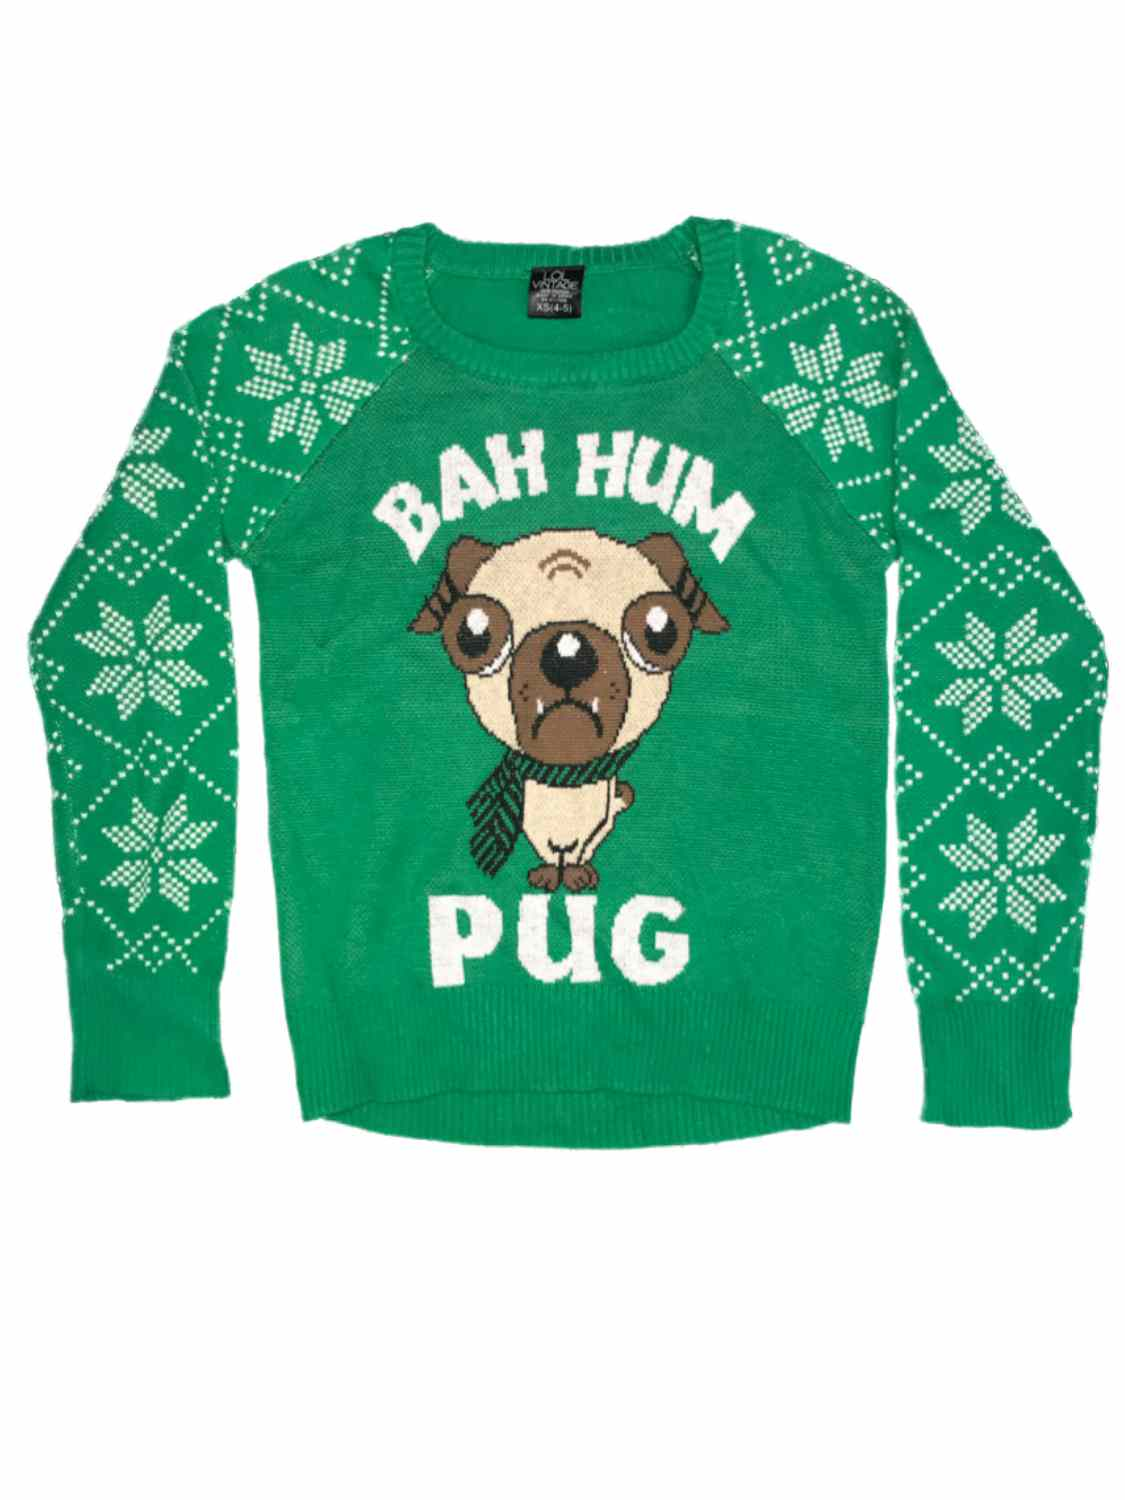 Girls Green Puppy Dog Snowflake Ugly Christmas Sweater Bah Hum Pug Holiday Knit Girls\u0027 Sweaters